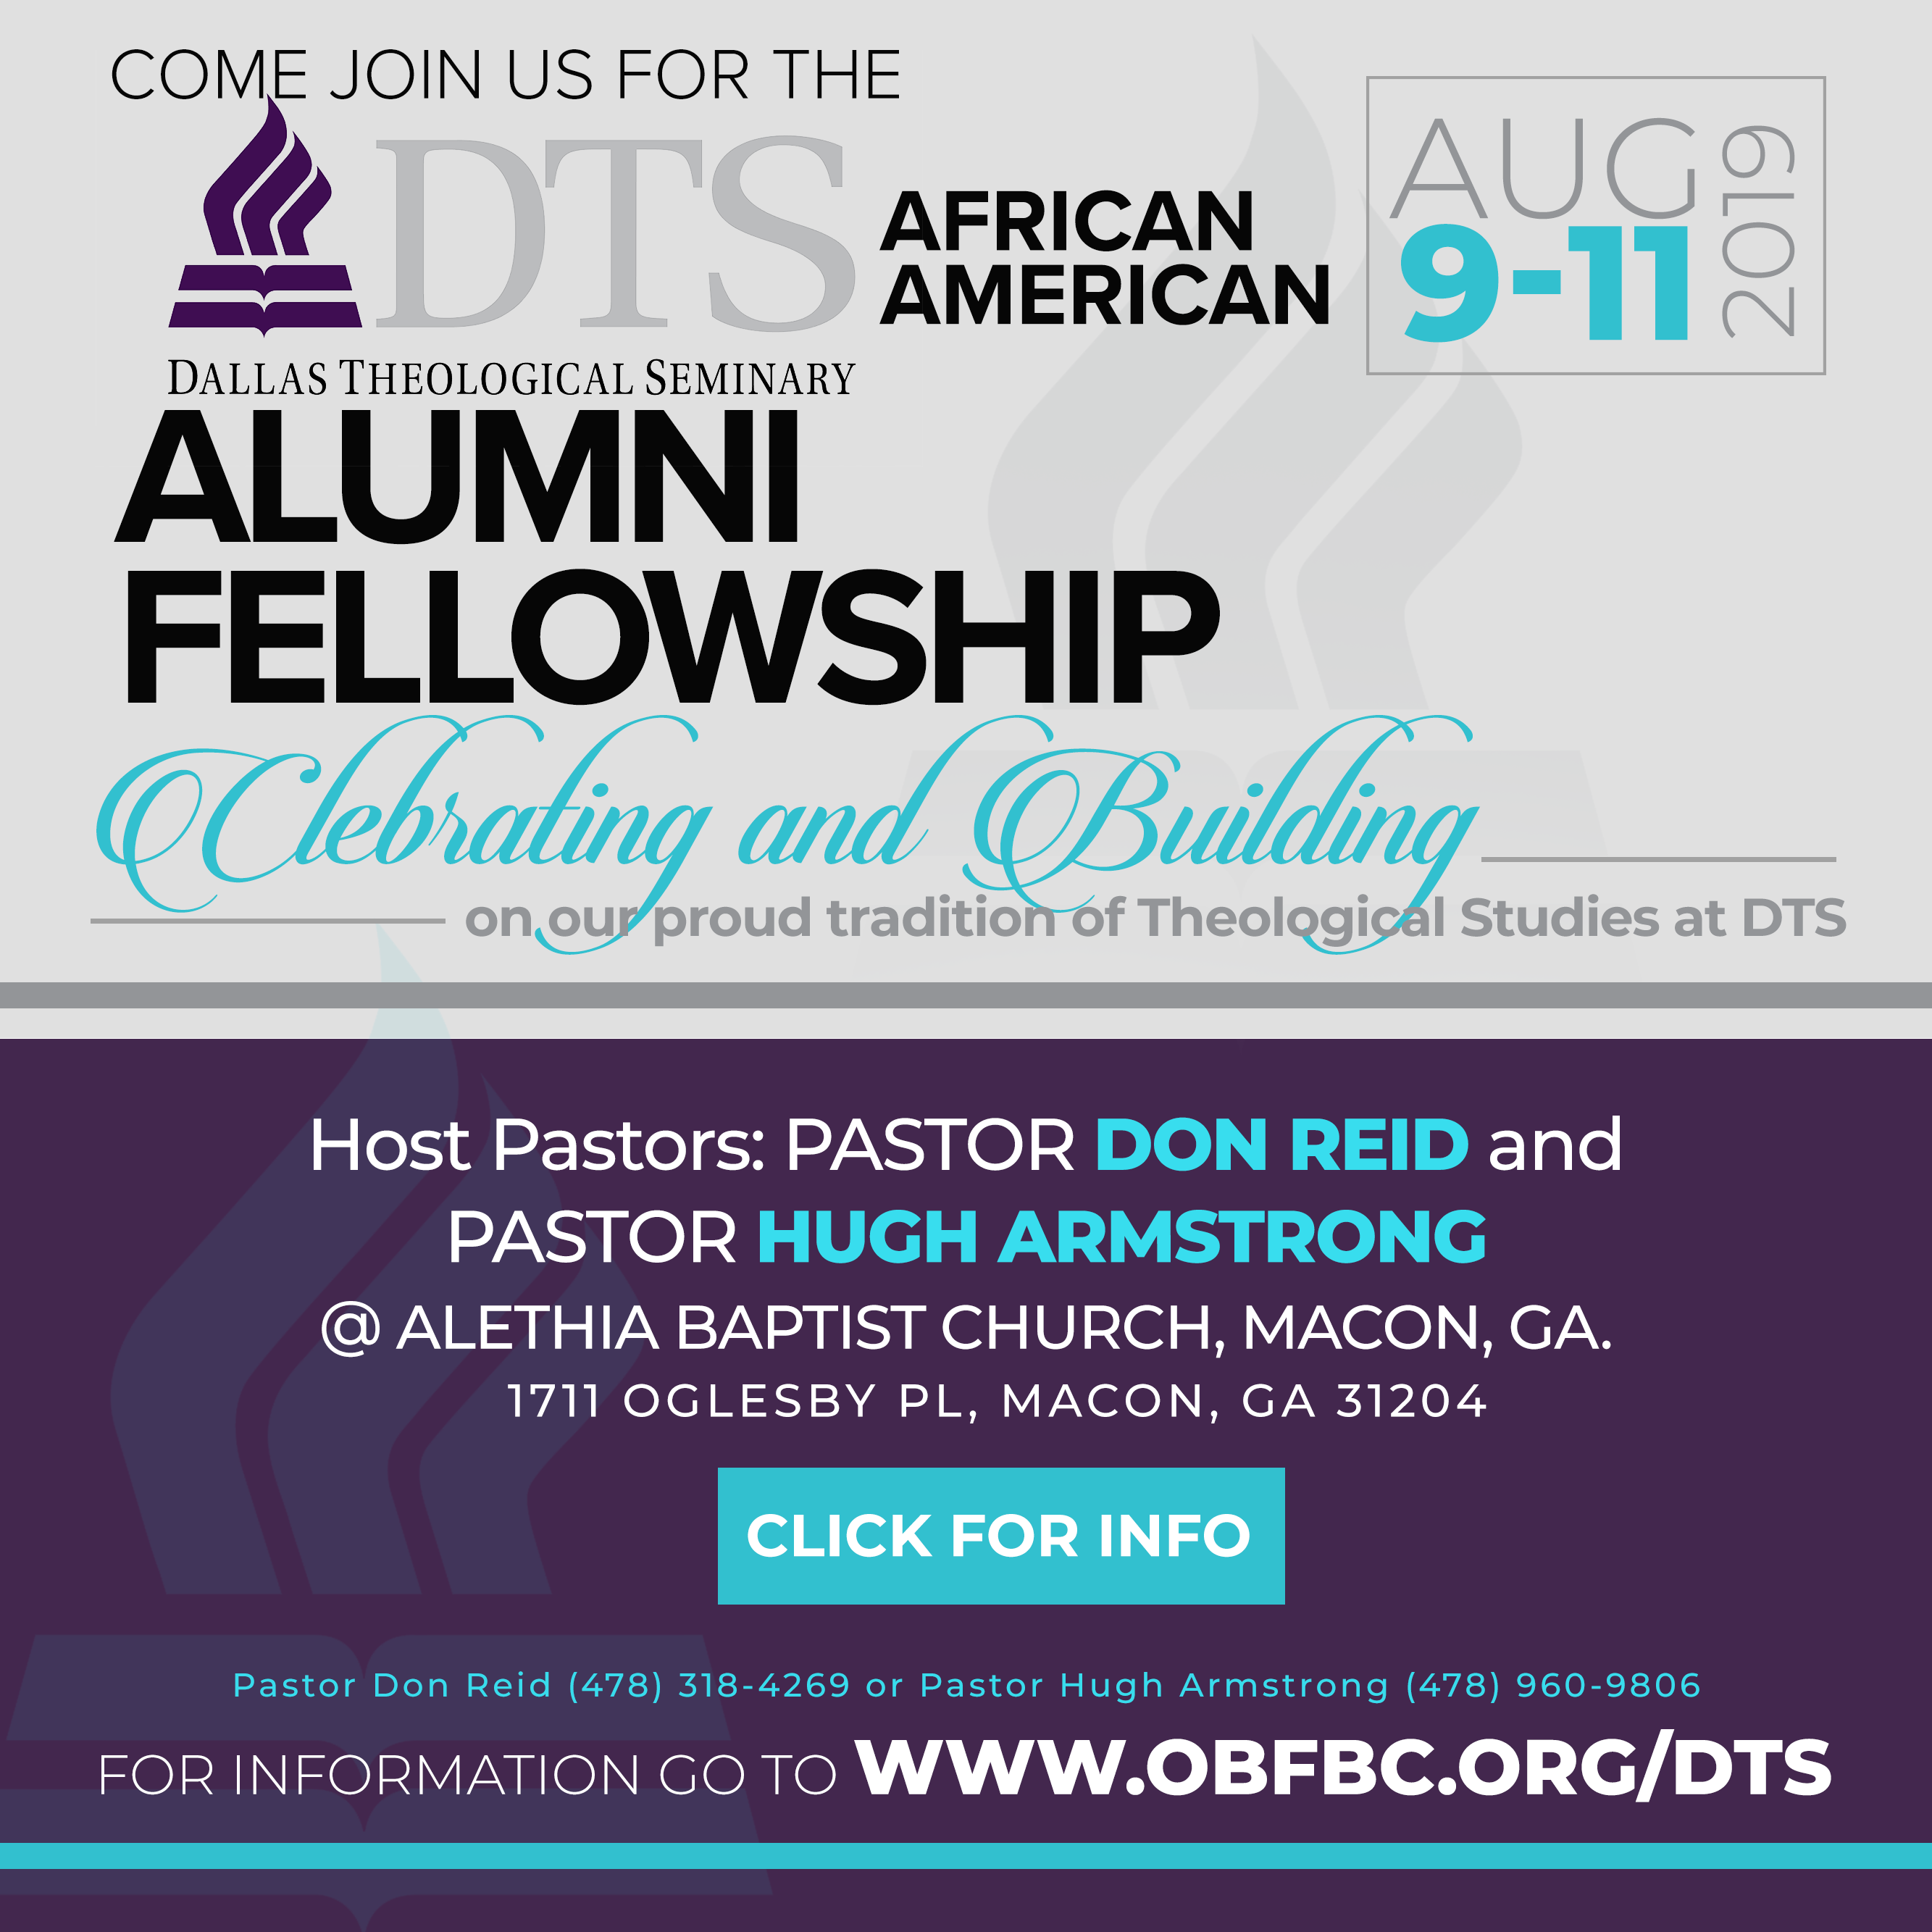 https://www.obfbc.org/wp-content/uploads/2019/05/Alumni-fellowship-social-1.png